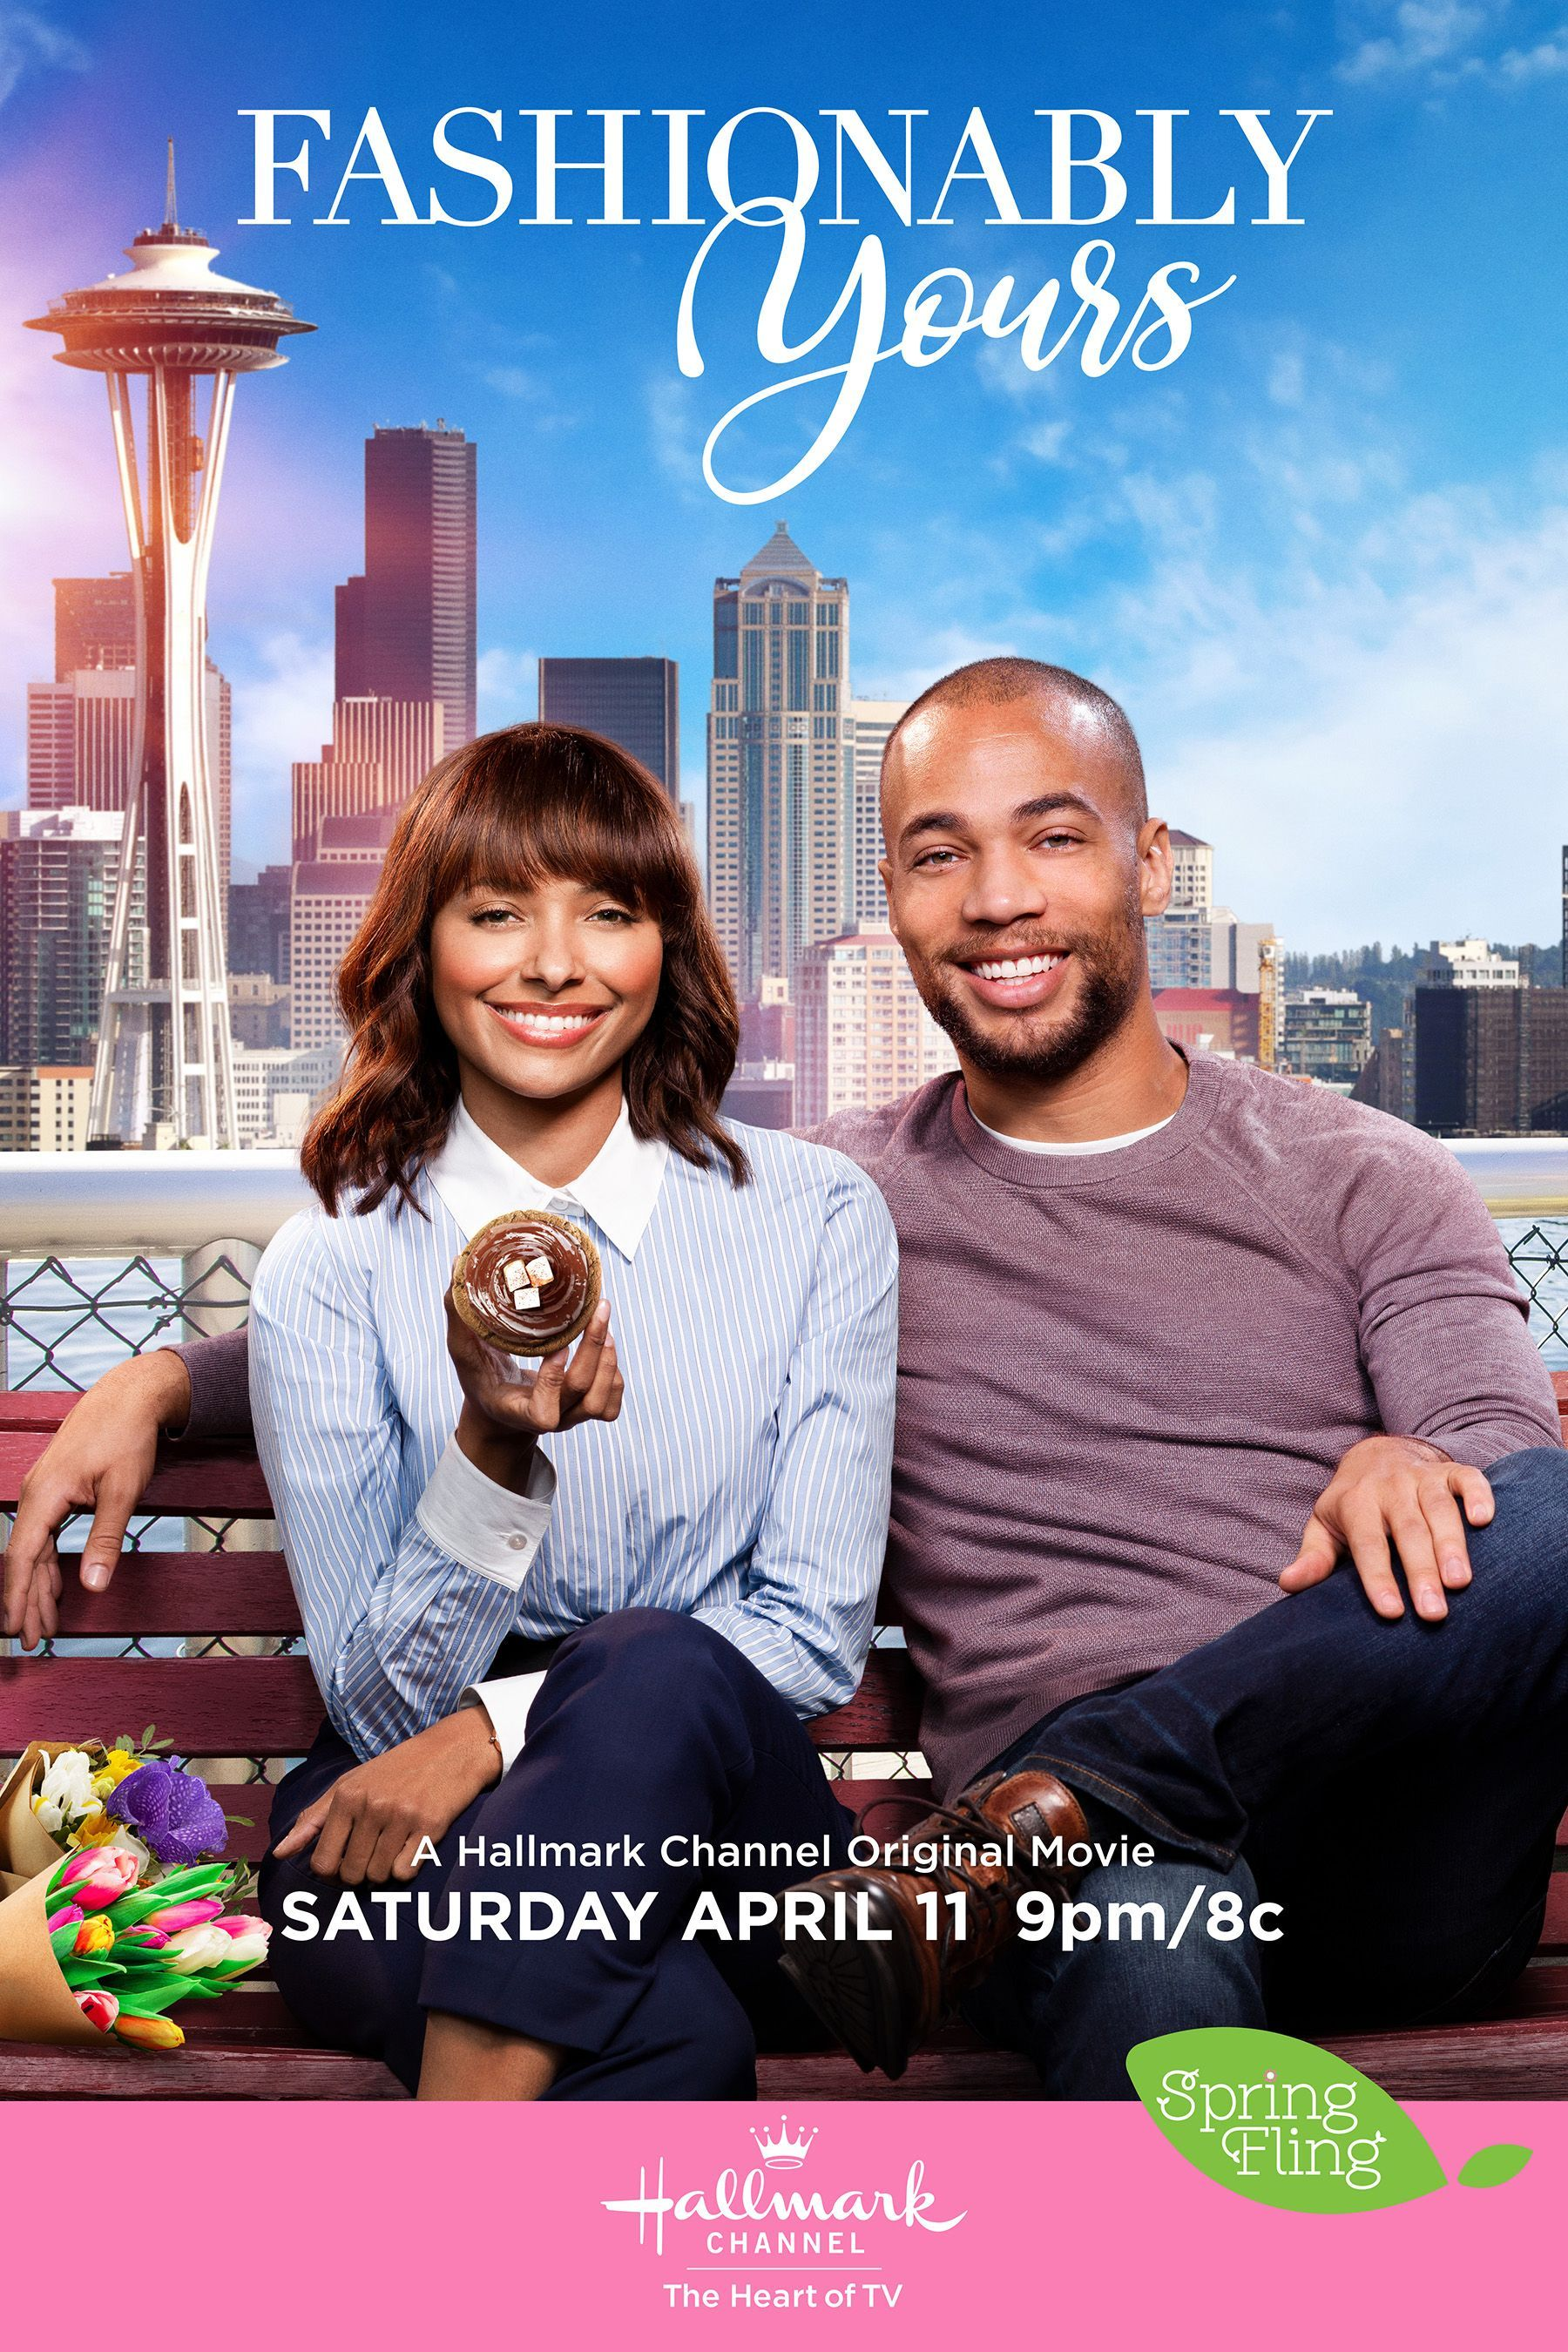 On April 11 Kat Graham And Kendrick Sampson Star In The Stylish Fashionably Yours Part Of Spring Fling On Hallmark Movies Hallmark Channel Christmas Movies